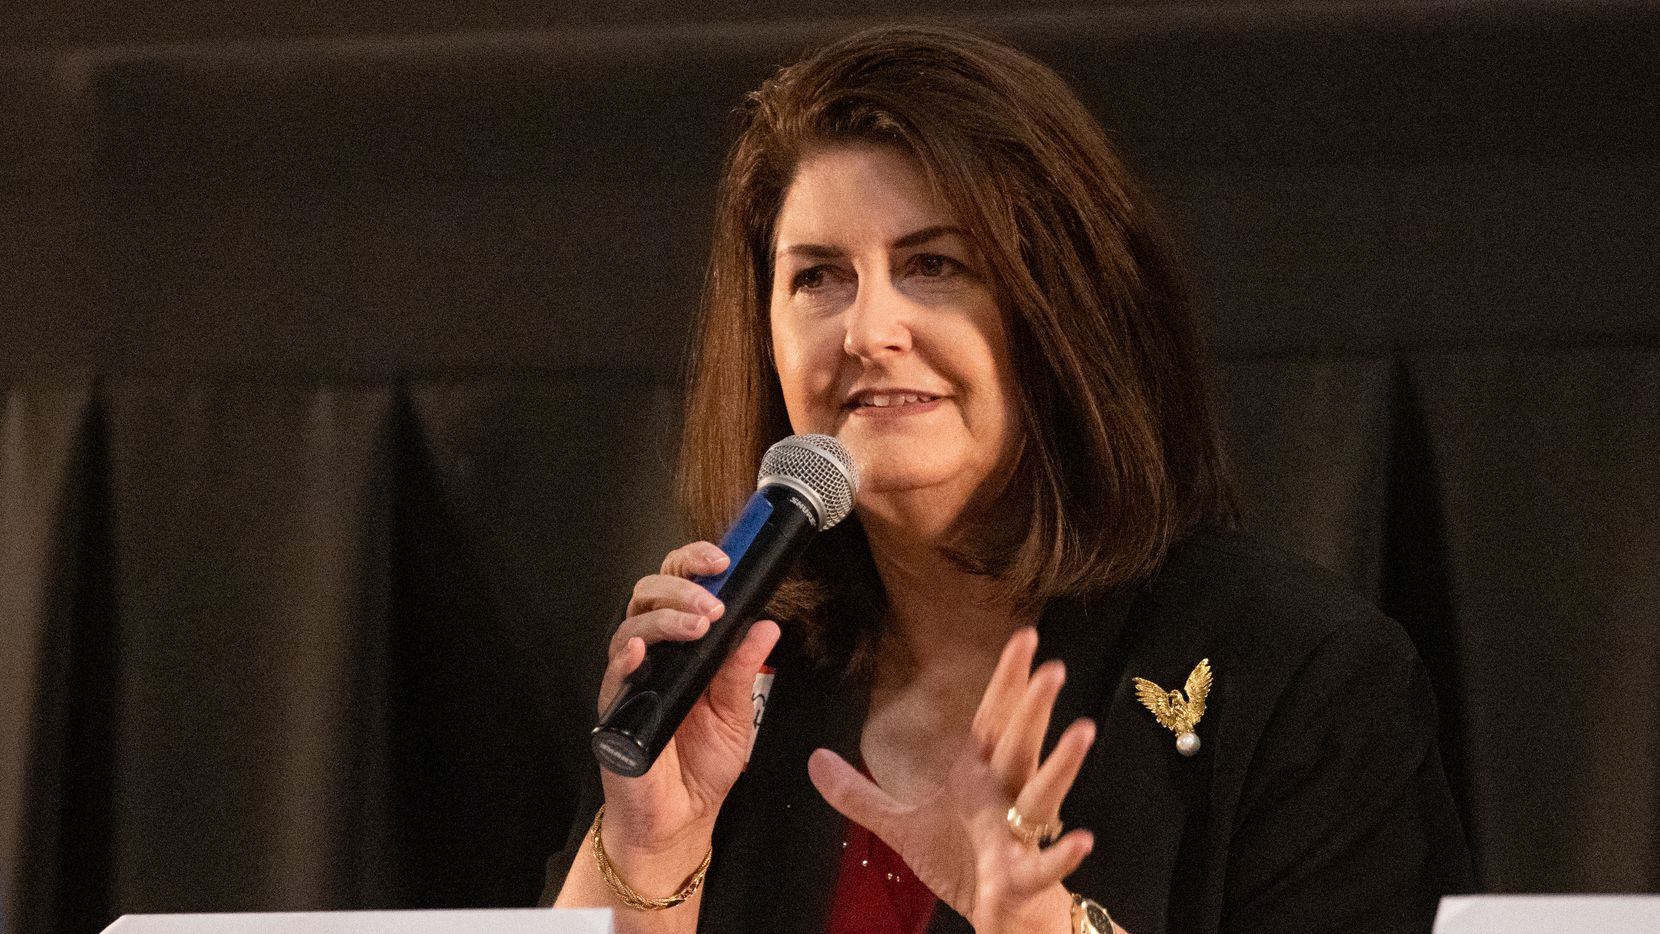 Susan Wright, a Republican candidate running in the 6th Congressional District of Texas race, answers questions during a forum hosted by the Arlington Republican Club at Studio Movie Grill in Arlington on Wednesday, March 31, 2021. (Juan Figueroa/ The Dallas Morning News)